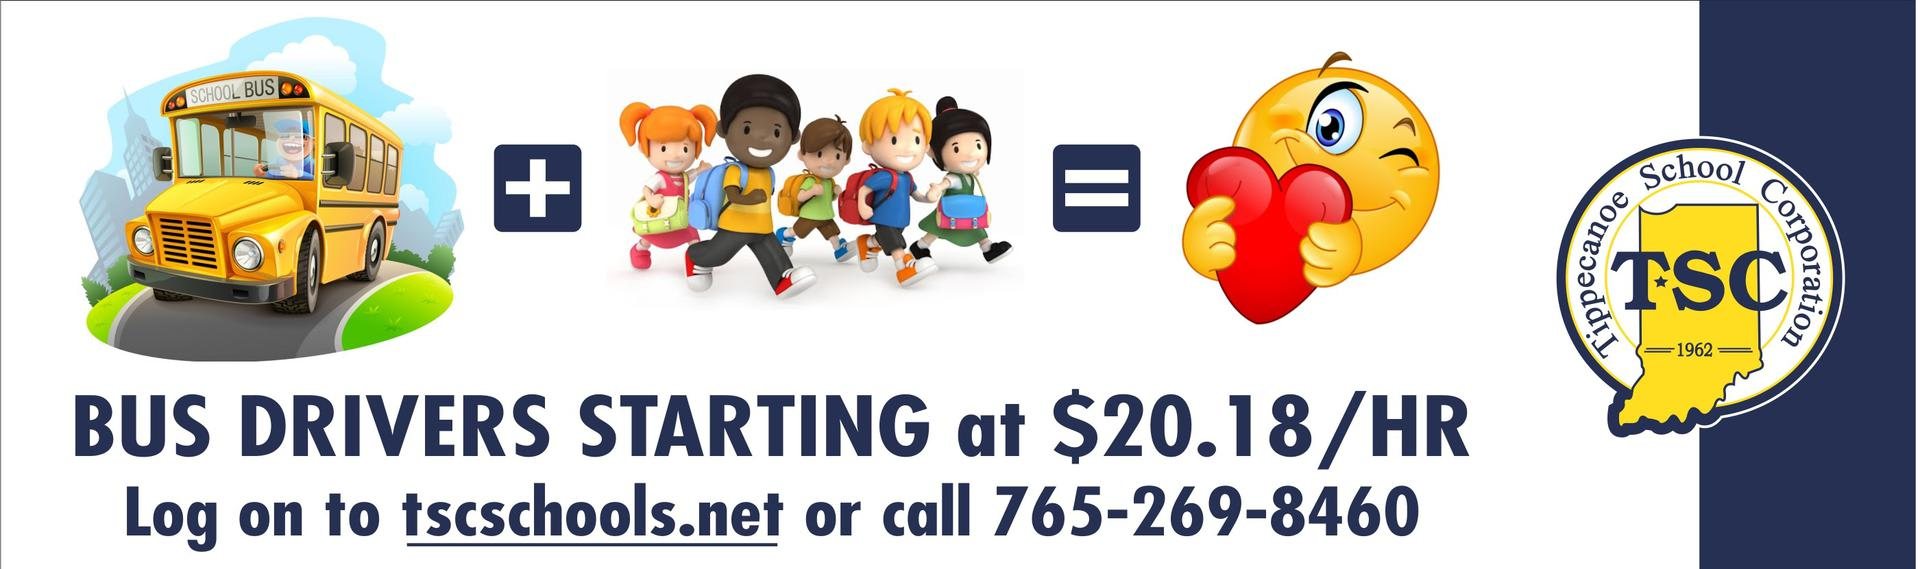 Logo for Bus Drivers Starting at $20.18/hor. Log onto tscschools.net or call 765-269-8460